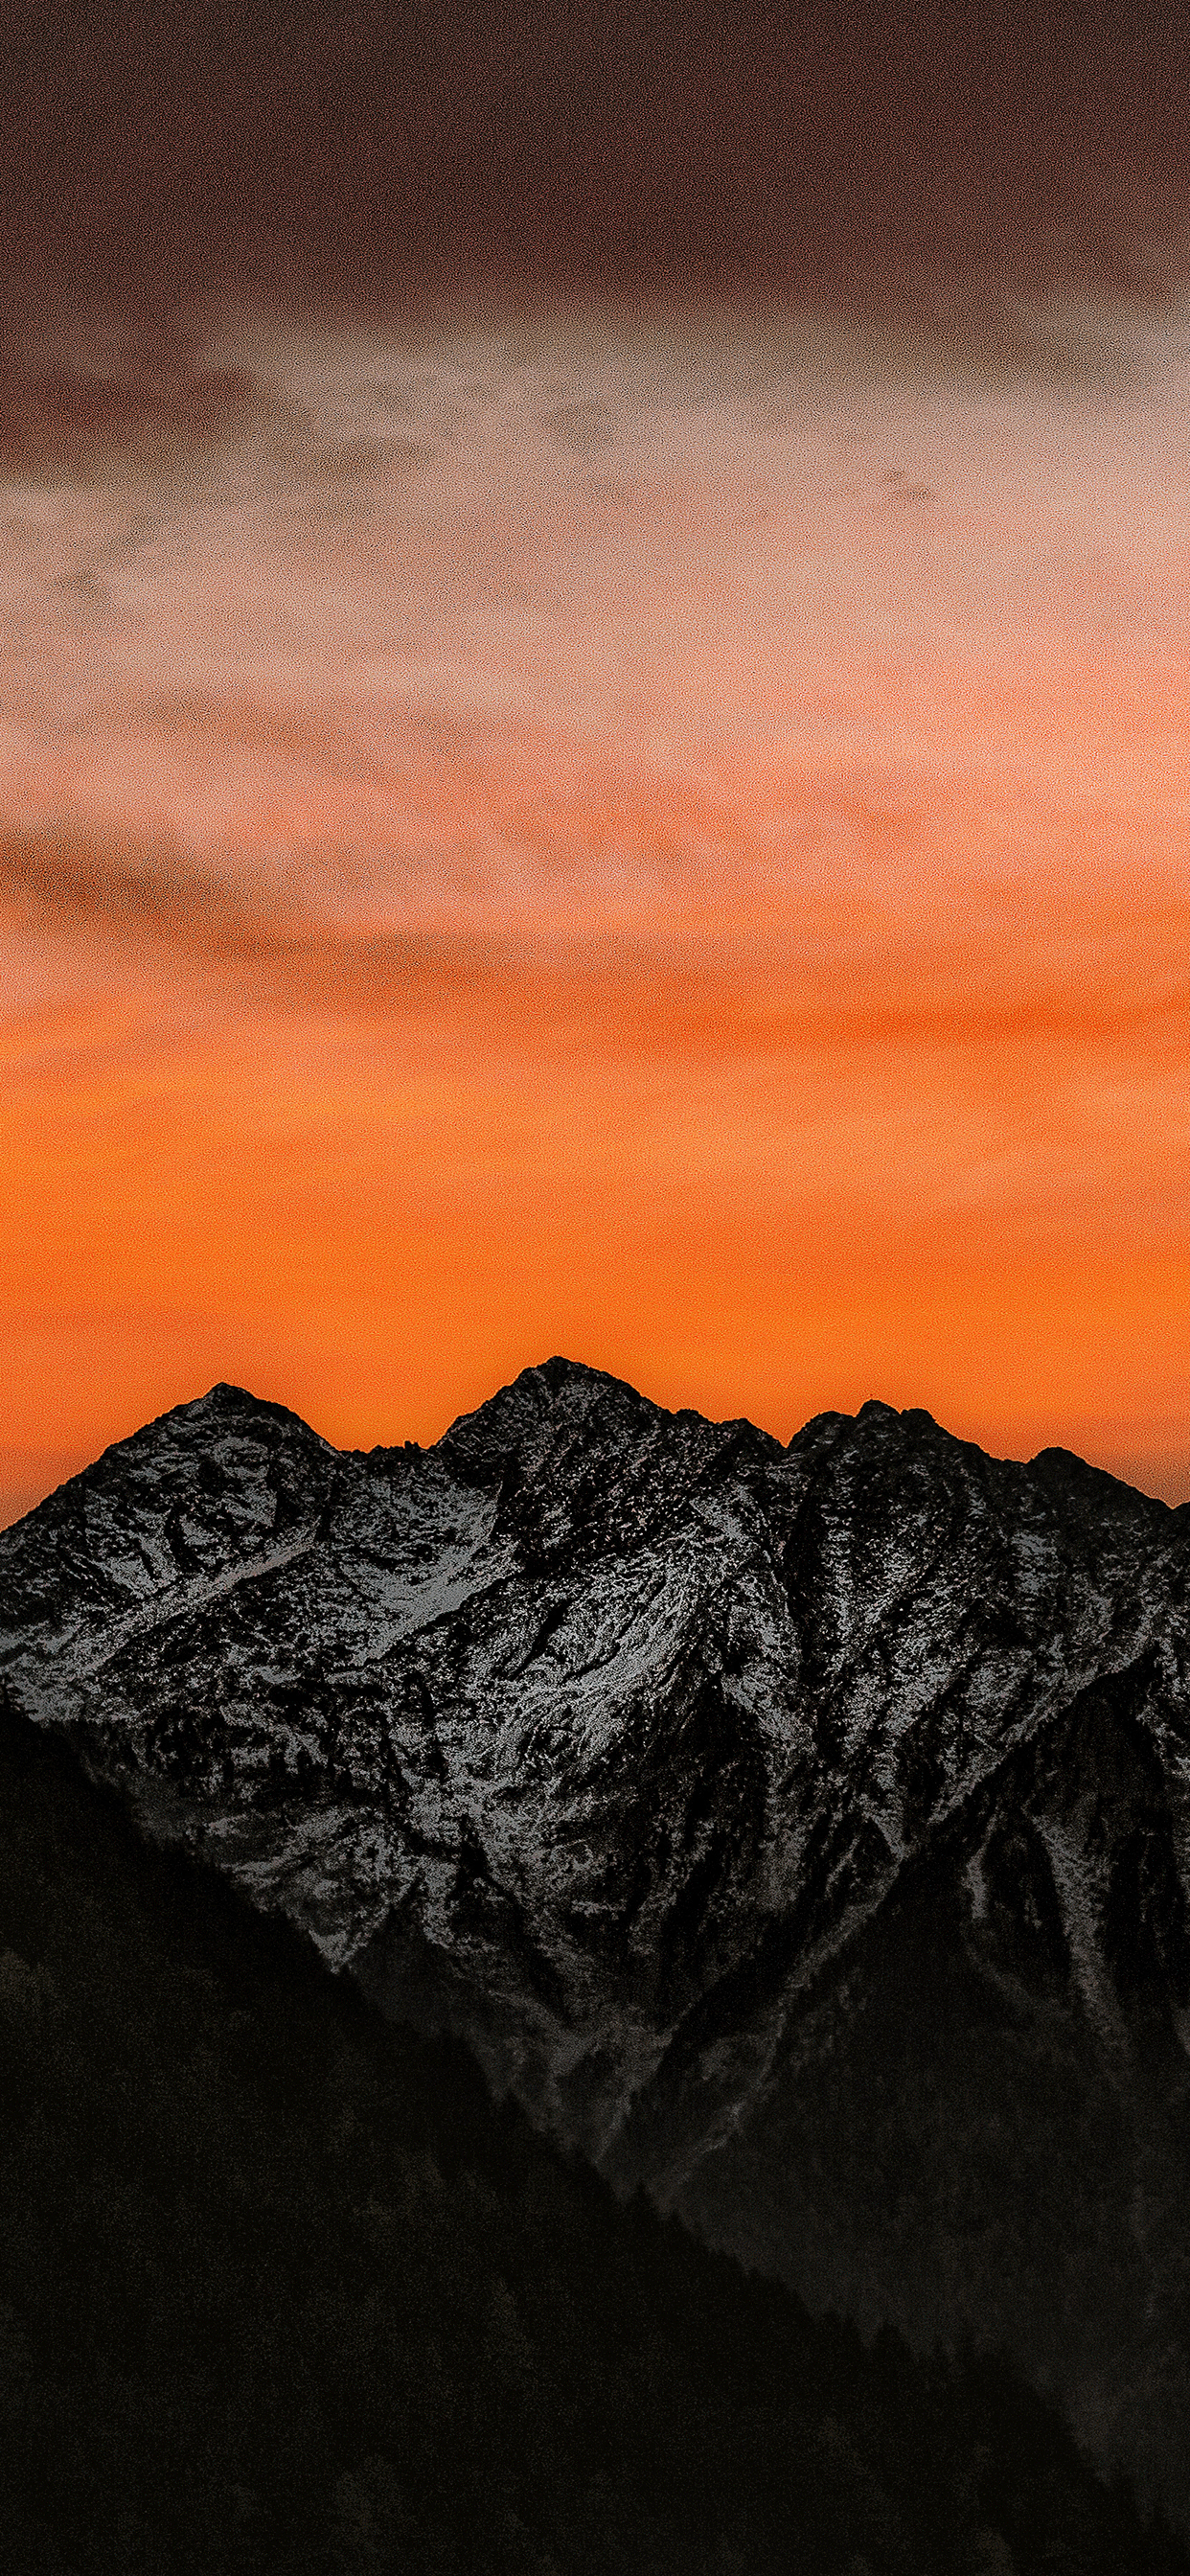 Mountains Wallpaper For Iphone X 8 7 6 Free Download On